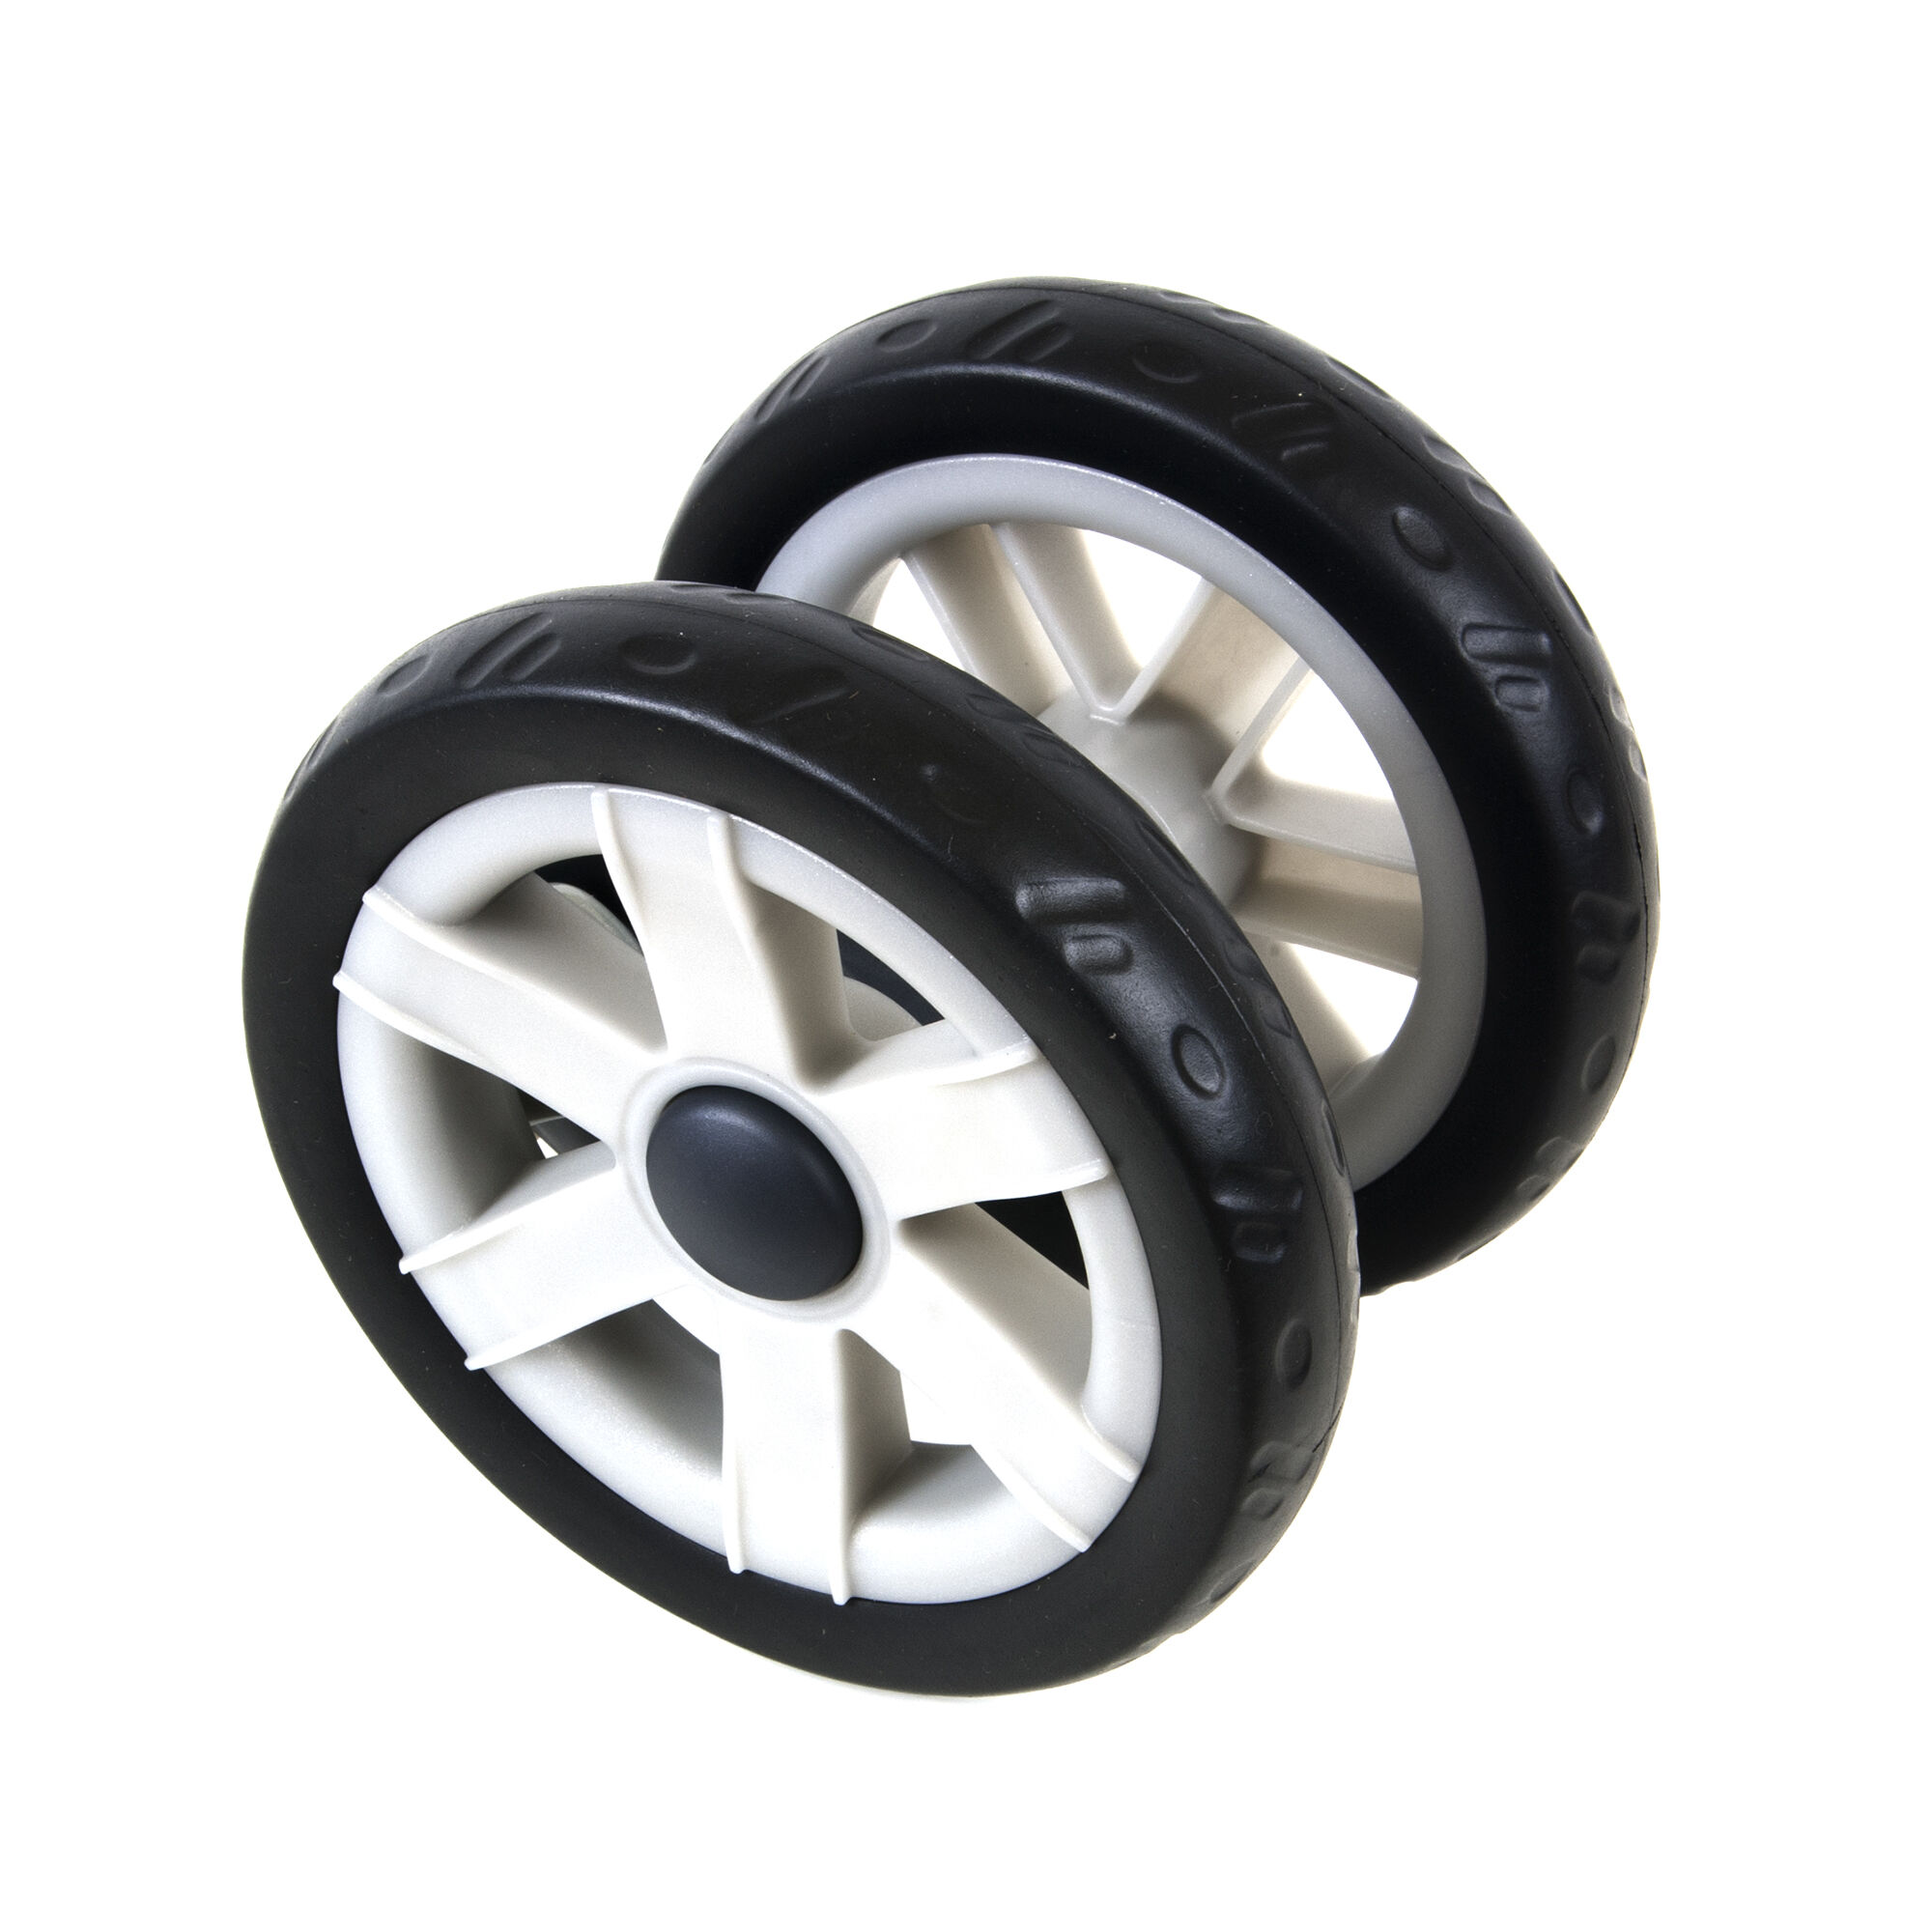 C6 Stroller Front Wheel Assembly